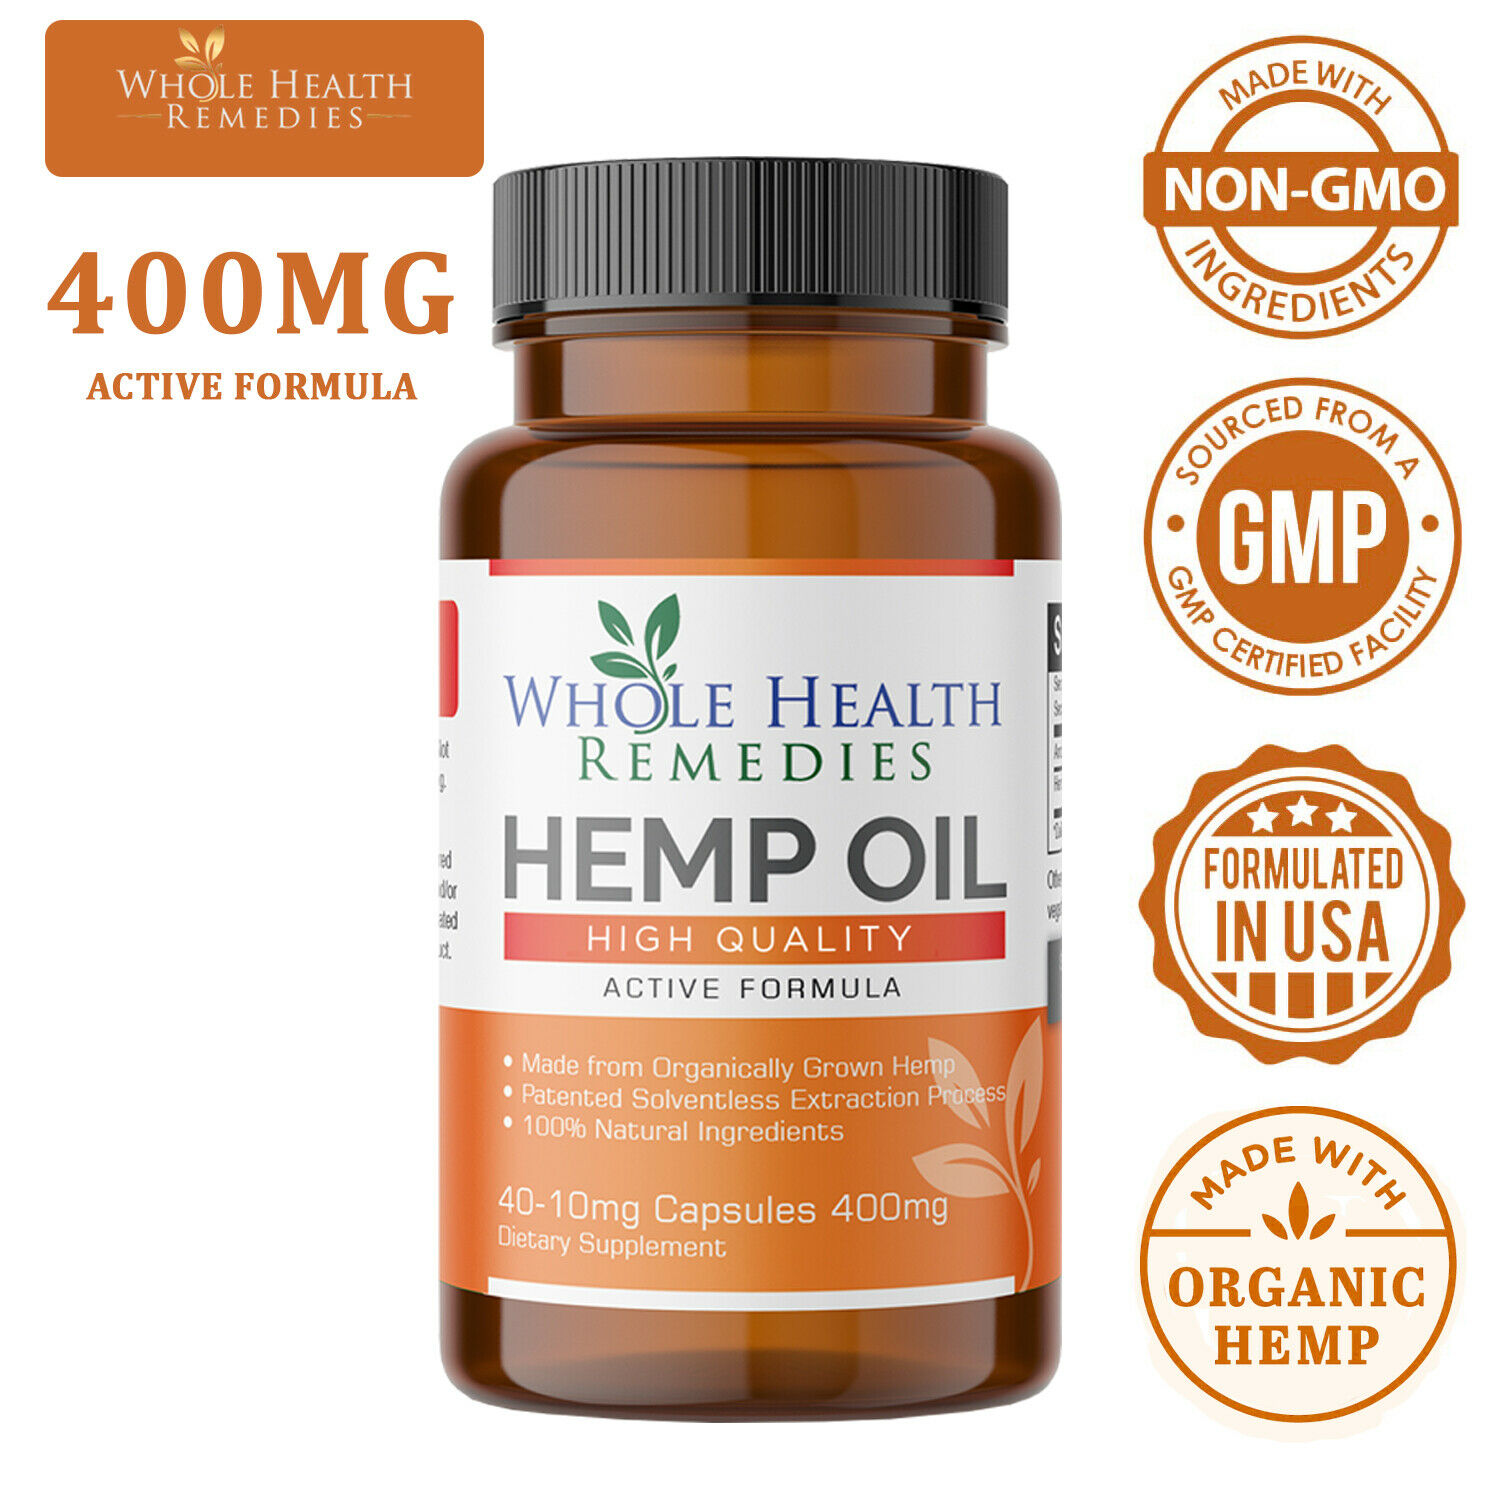 Pharmaceutical-Grade Hemp Oil Capsules for Pain & Stress Relief and Insomnia 5